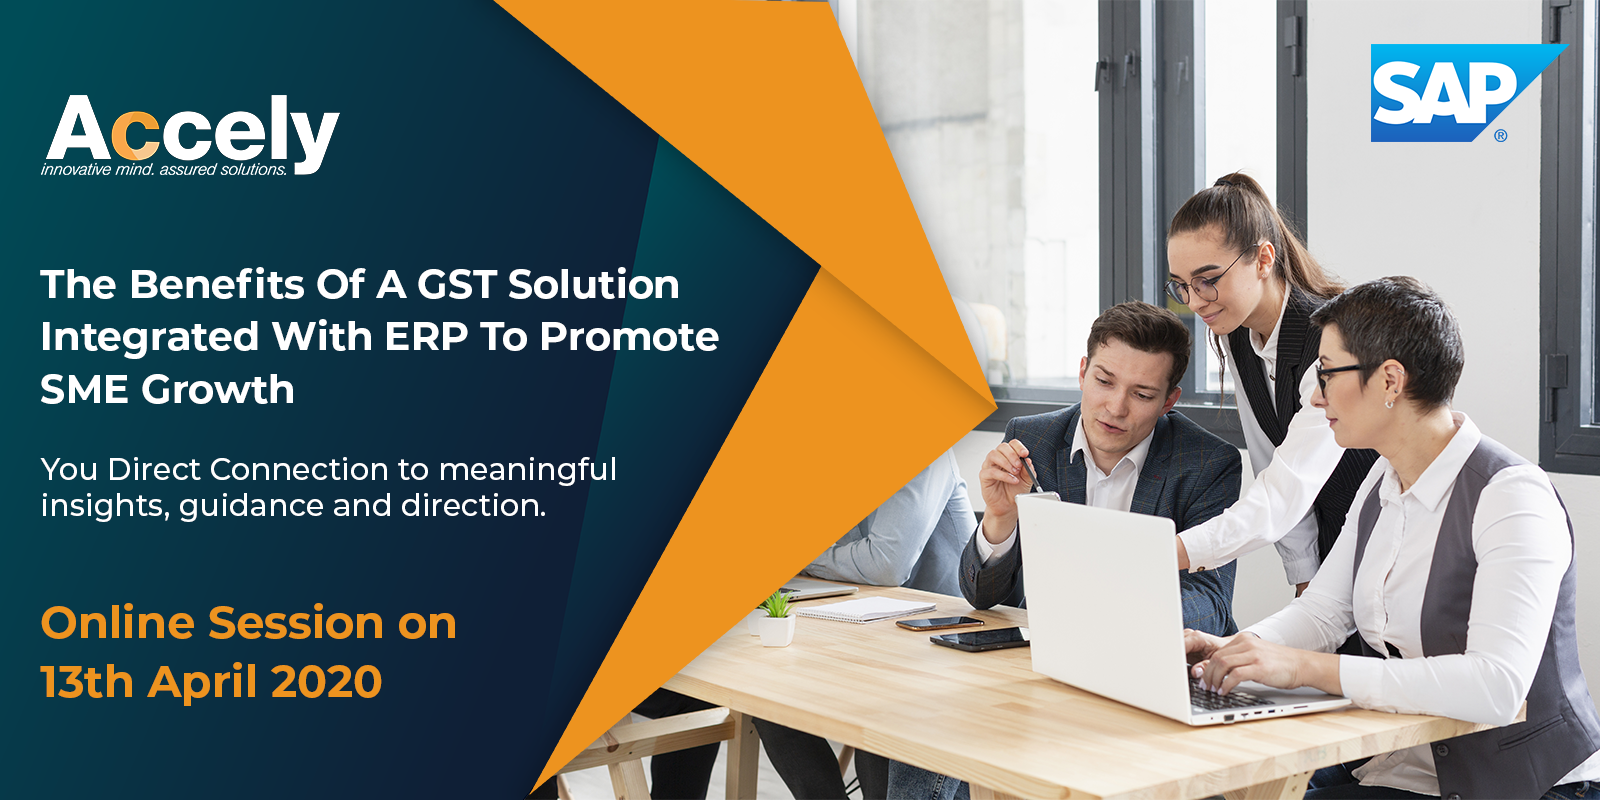 The Benefits Of A GST Solution Integrated With ERP To Promote SME Growth